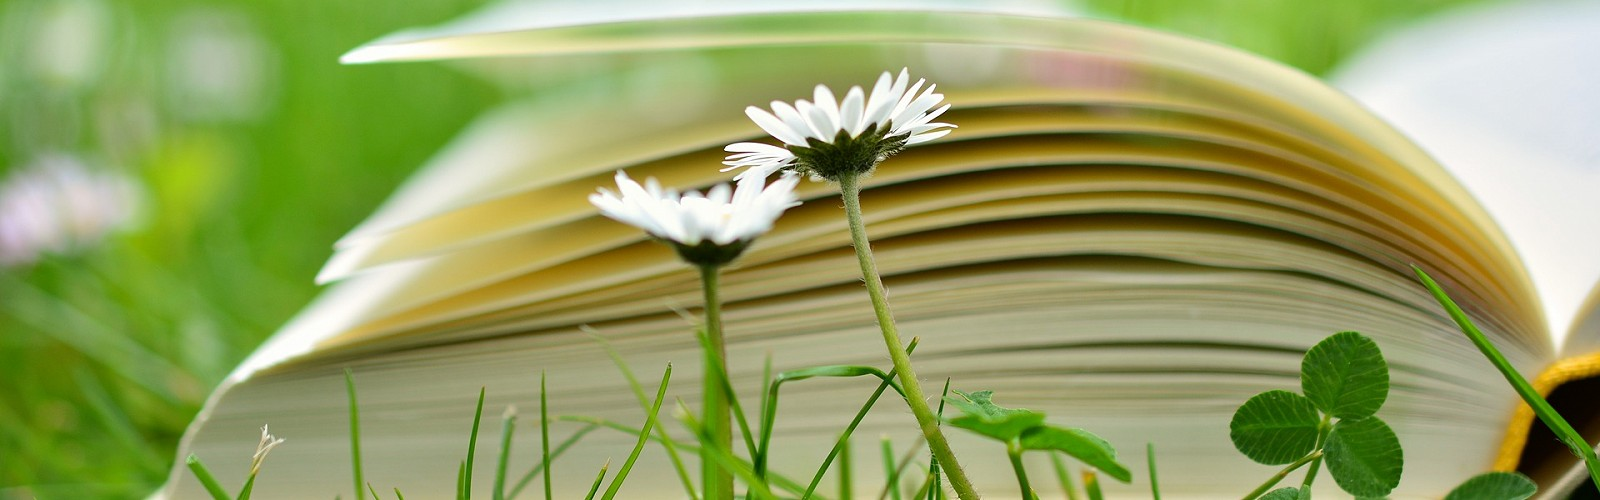 daisy flowers against top of open book